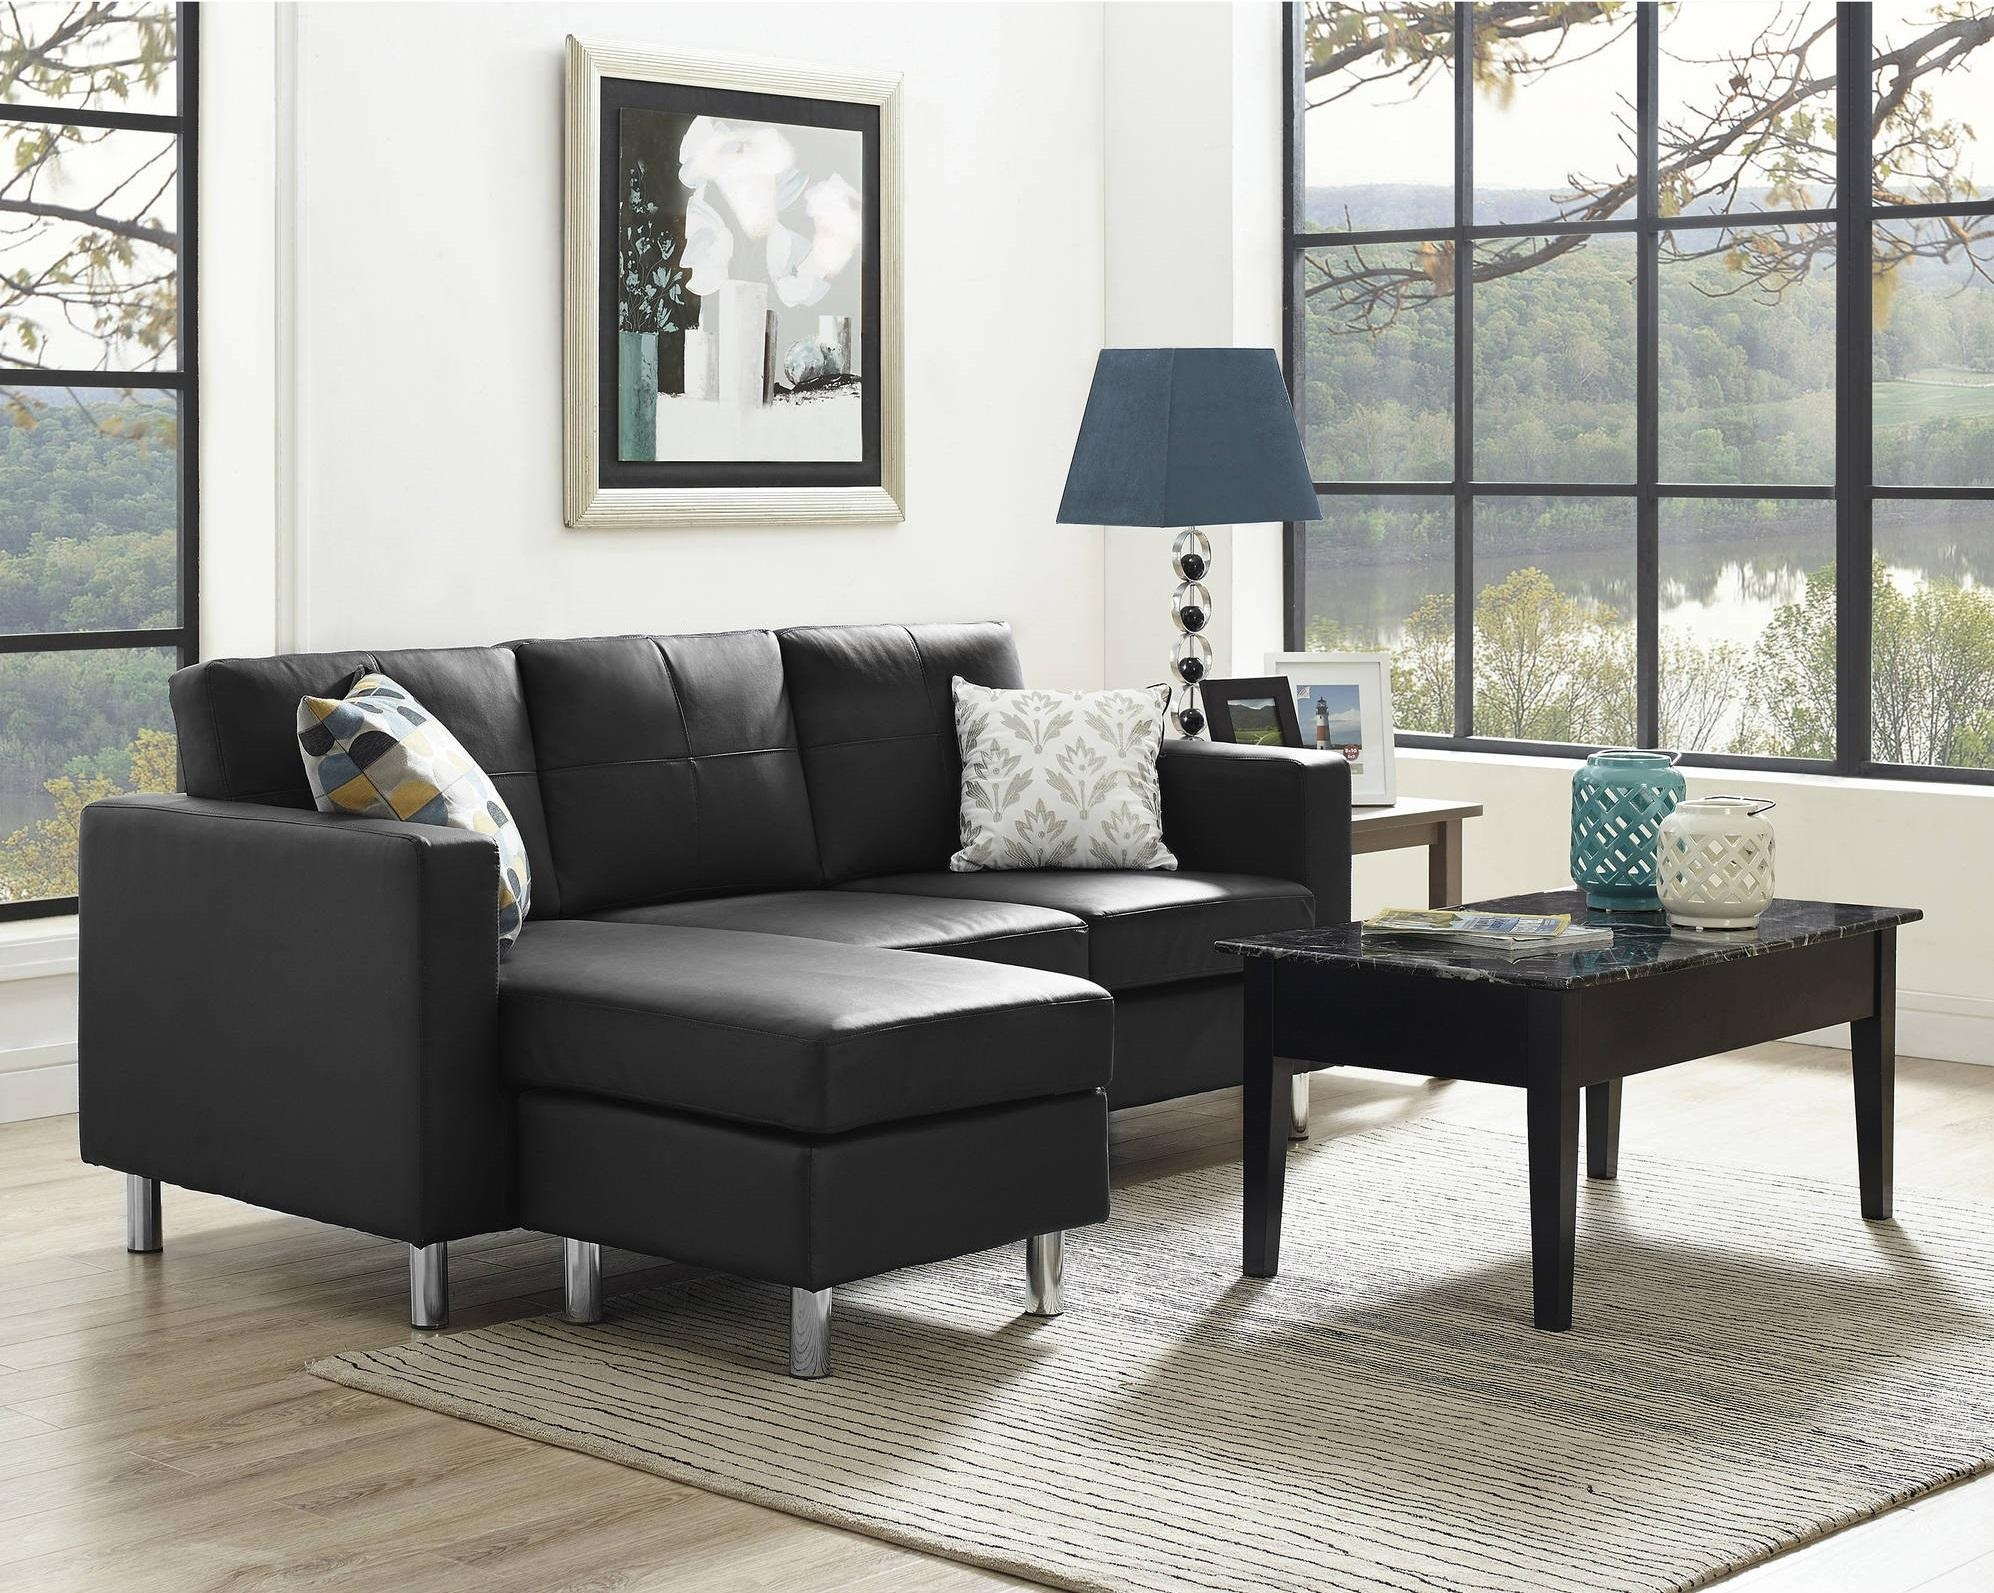 Decorating: Fill Your Home With Comfy Costco Sectionals Sofa For For Berkline Sectional Sofas (Image 9 of 20)